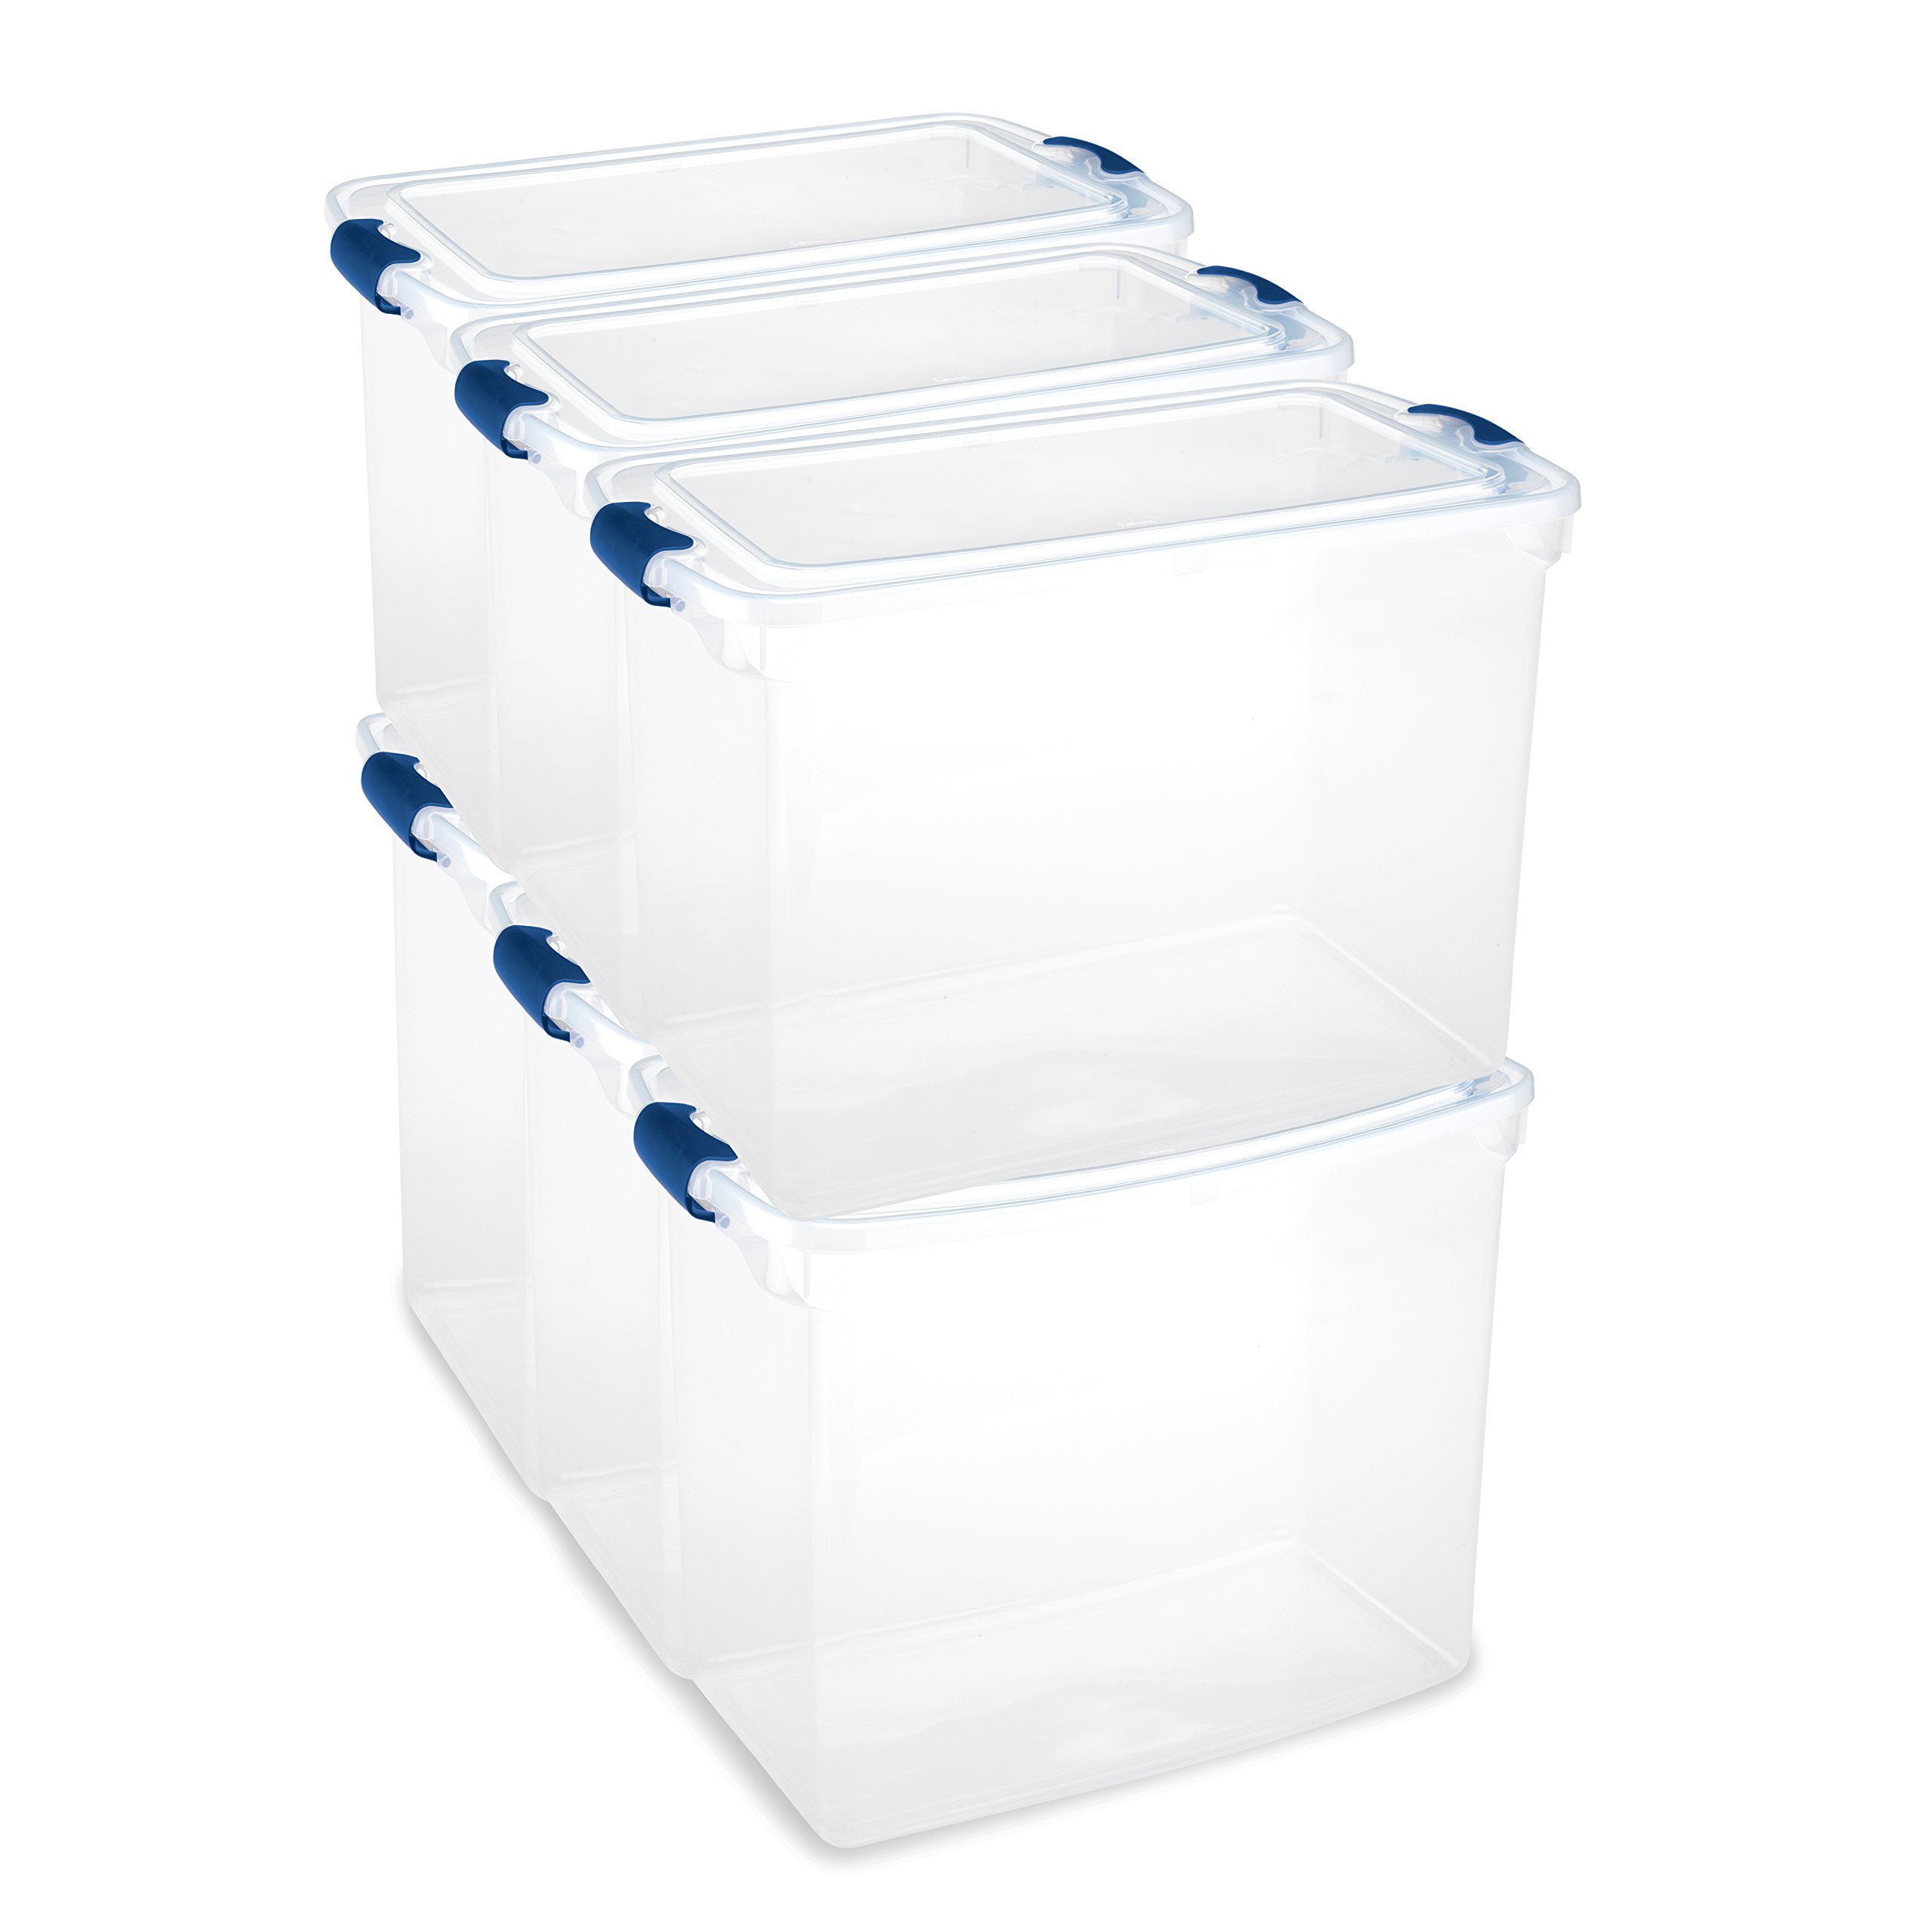 Homz Plastic Storage Tote Box, with Lid, Latching Handles, 112 Quart, Clear, Stackable, 6-Pack by Homz